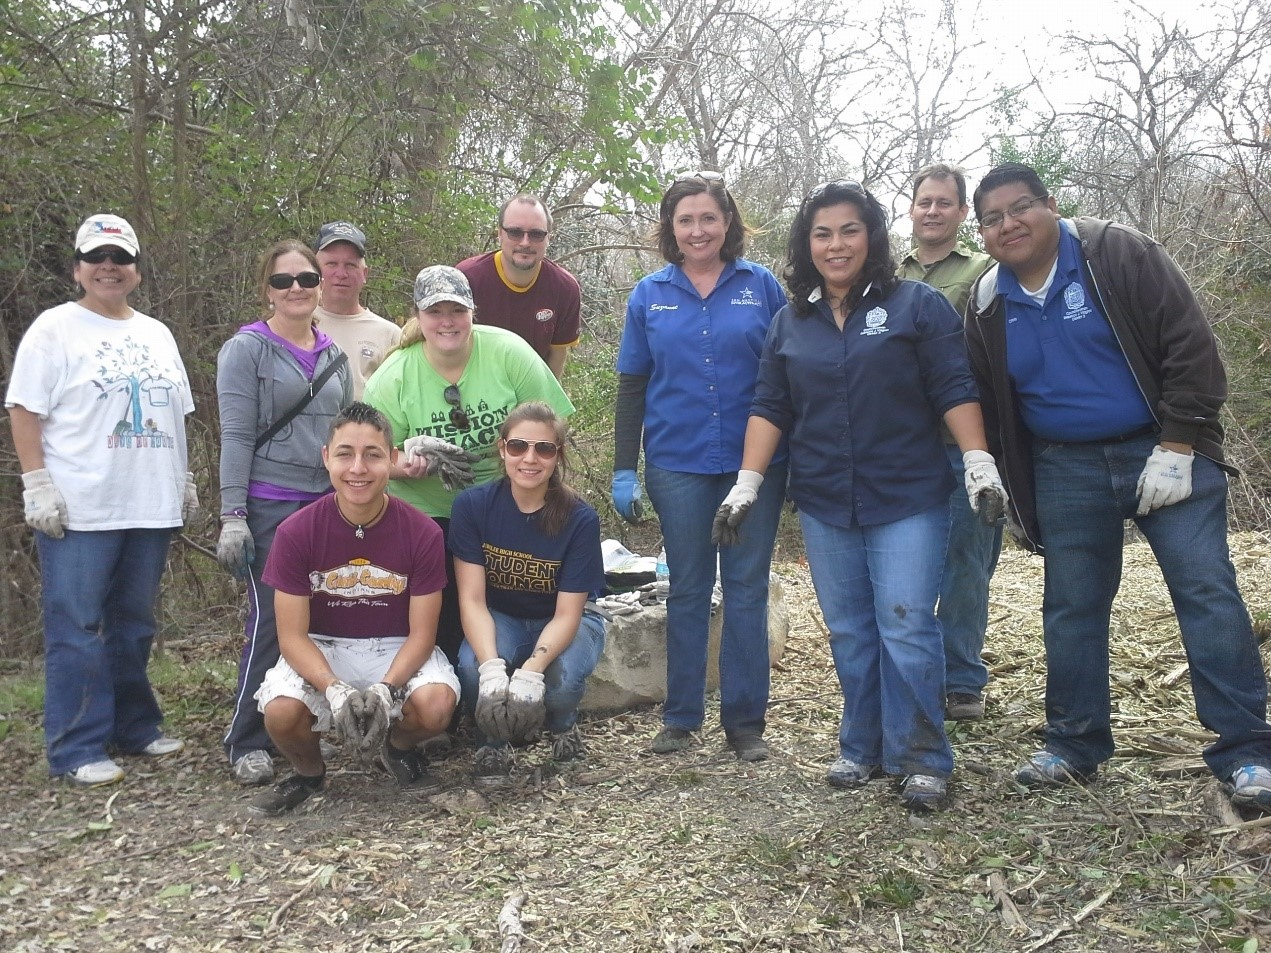 Volunteering with River Authority staff, River Warriors and District 3 Councilwoman Rebecca Viagran's office at the annual Basura Bash River and Waterway Cleanup event.